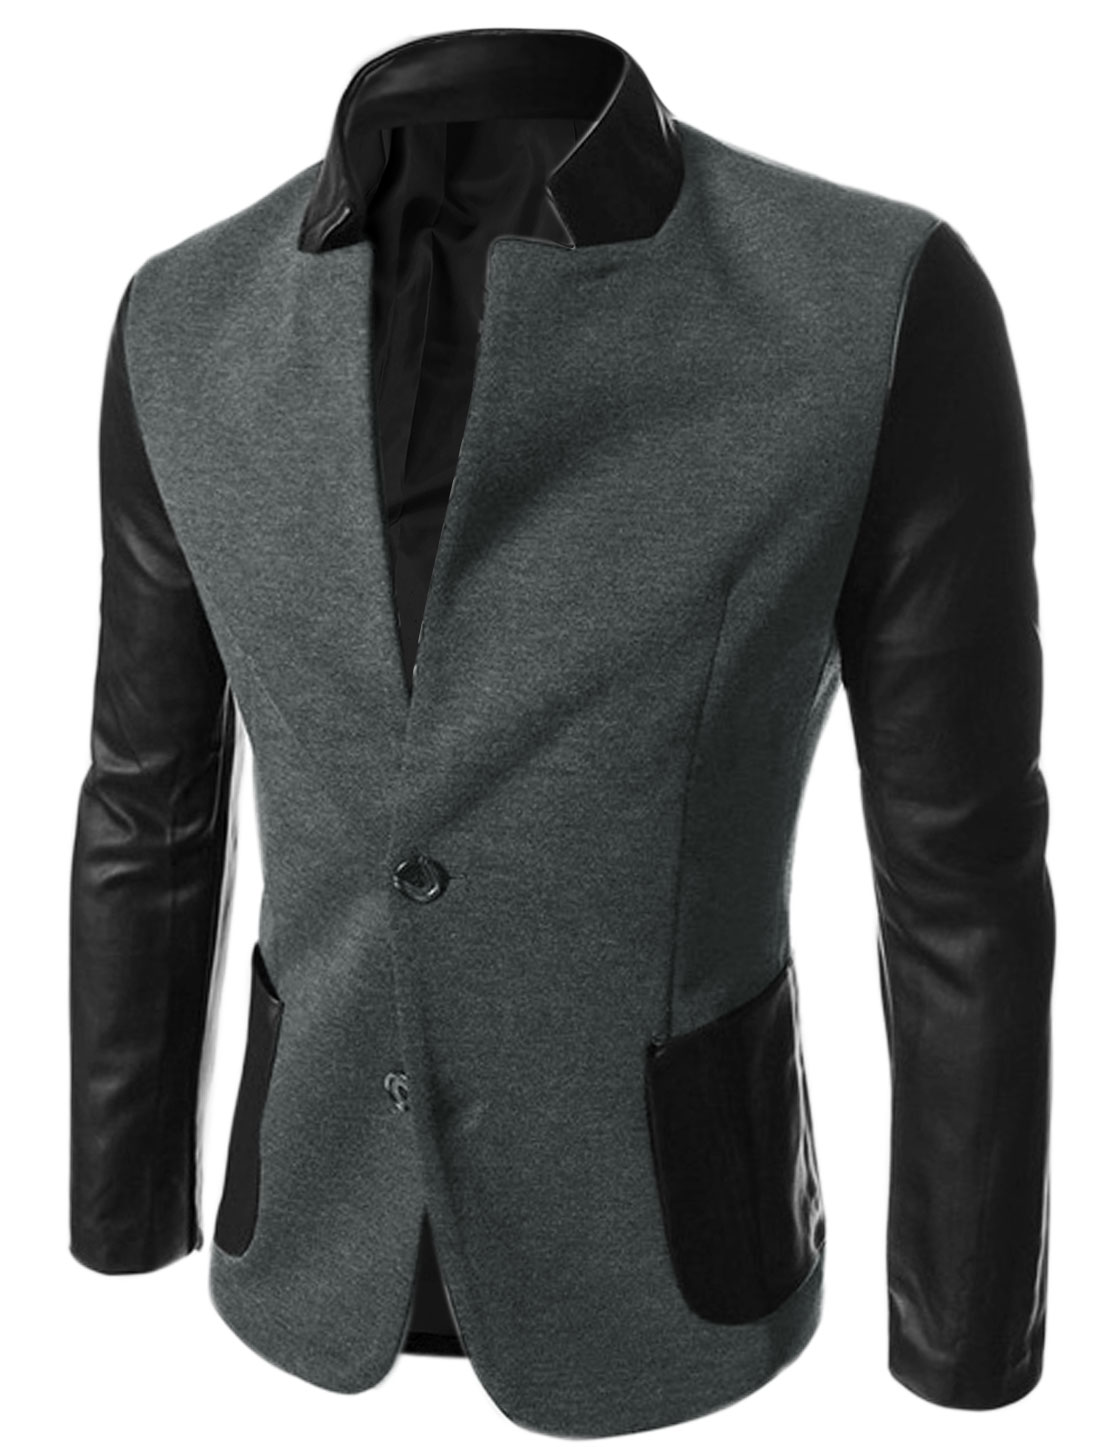 Men Imitation Leather Panel Padded Shoulder Jacket Dark Gray M